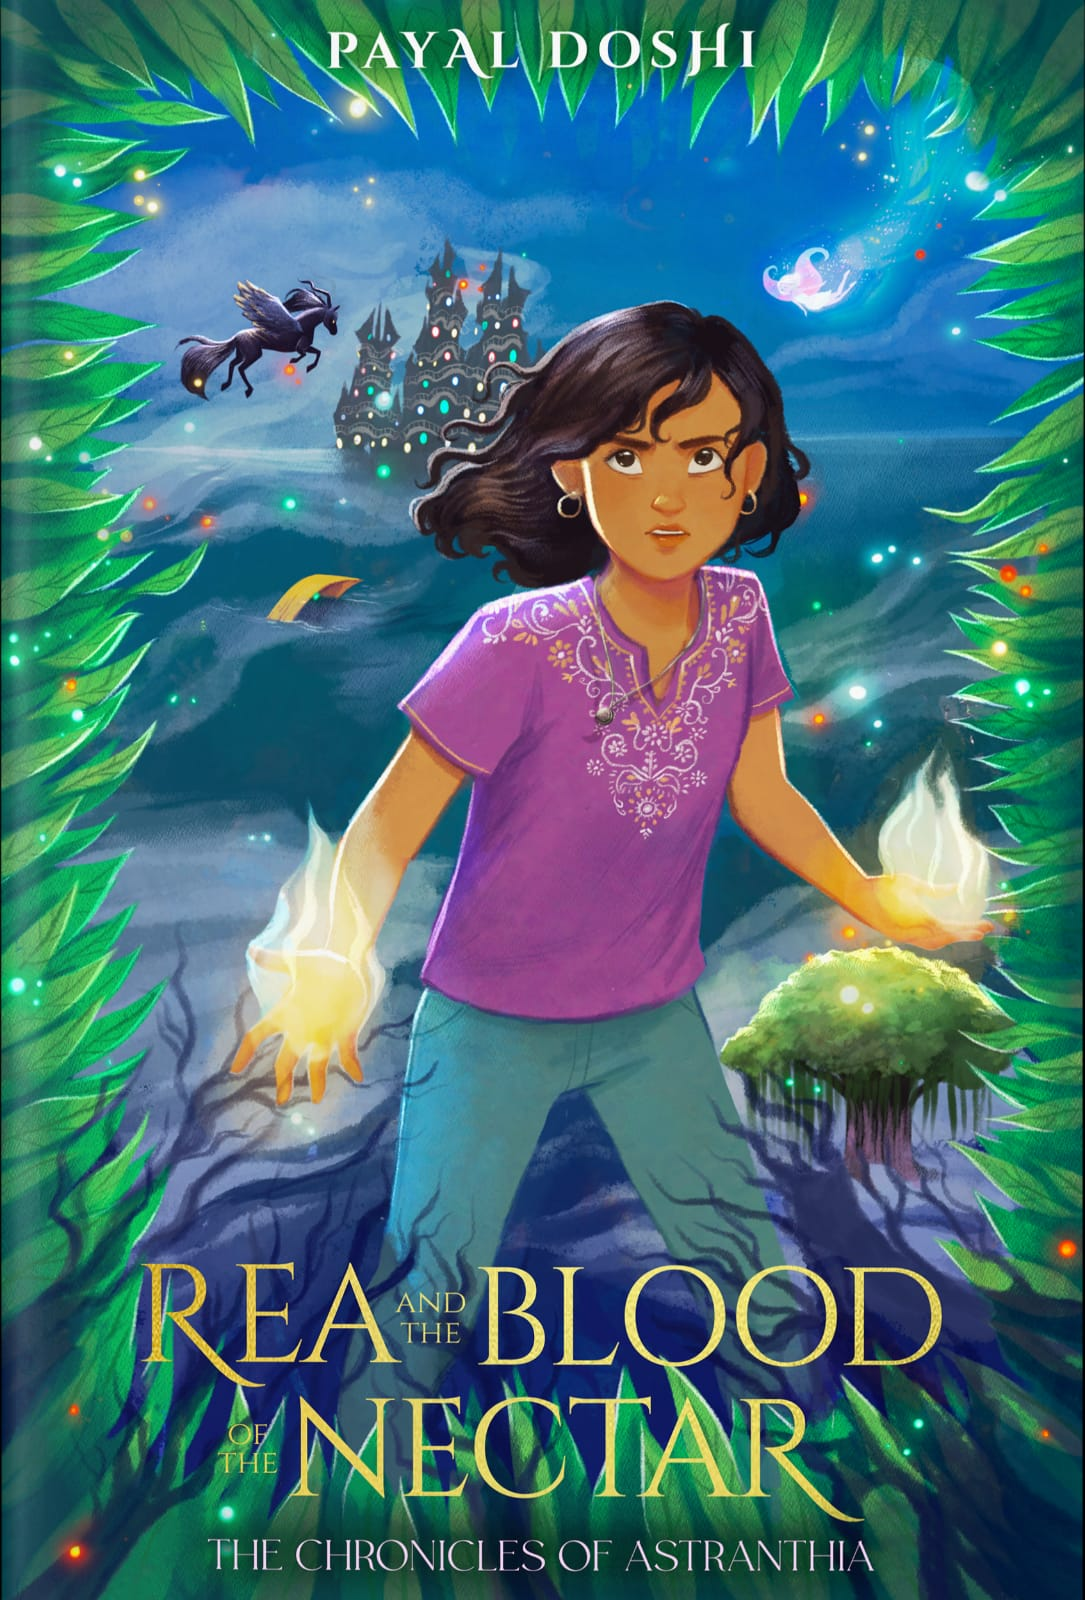 Rea and the Blood of the Nectar (The Chronicles of Astranthia, #1)